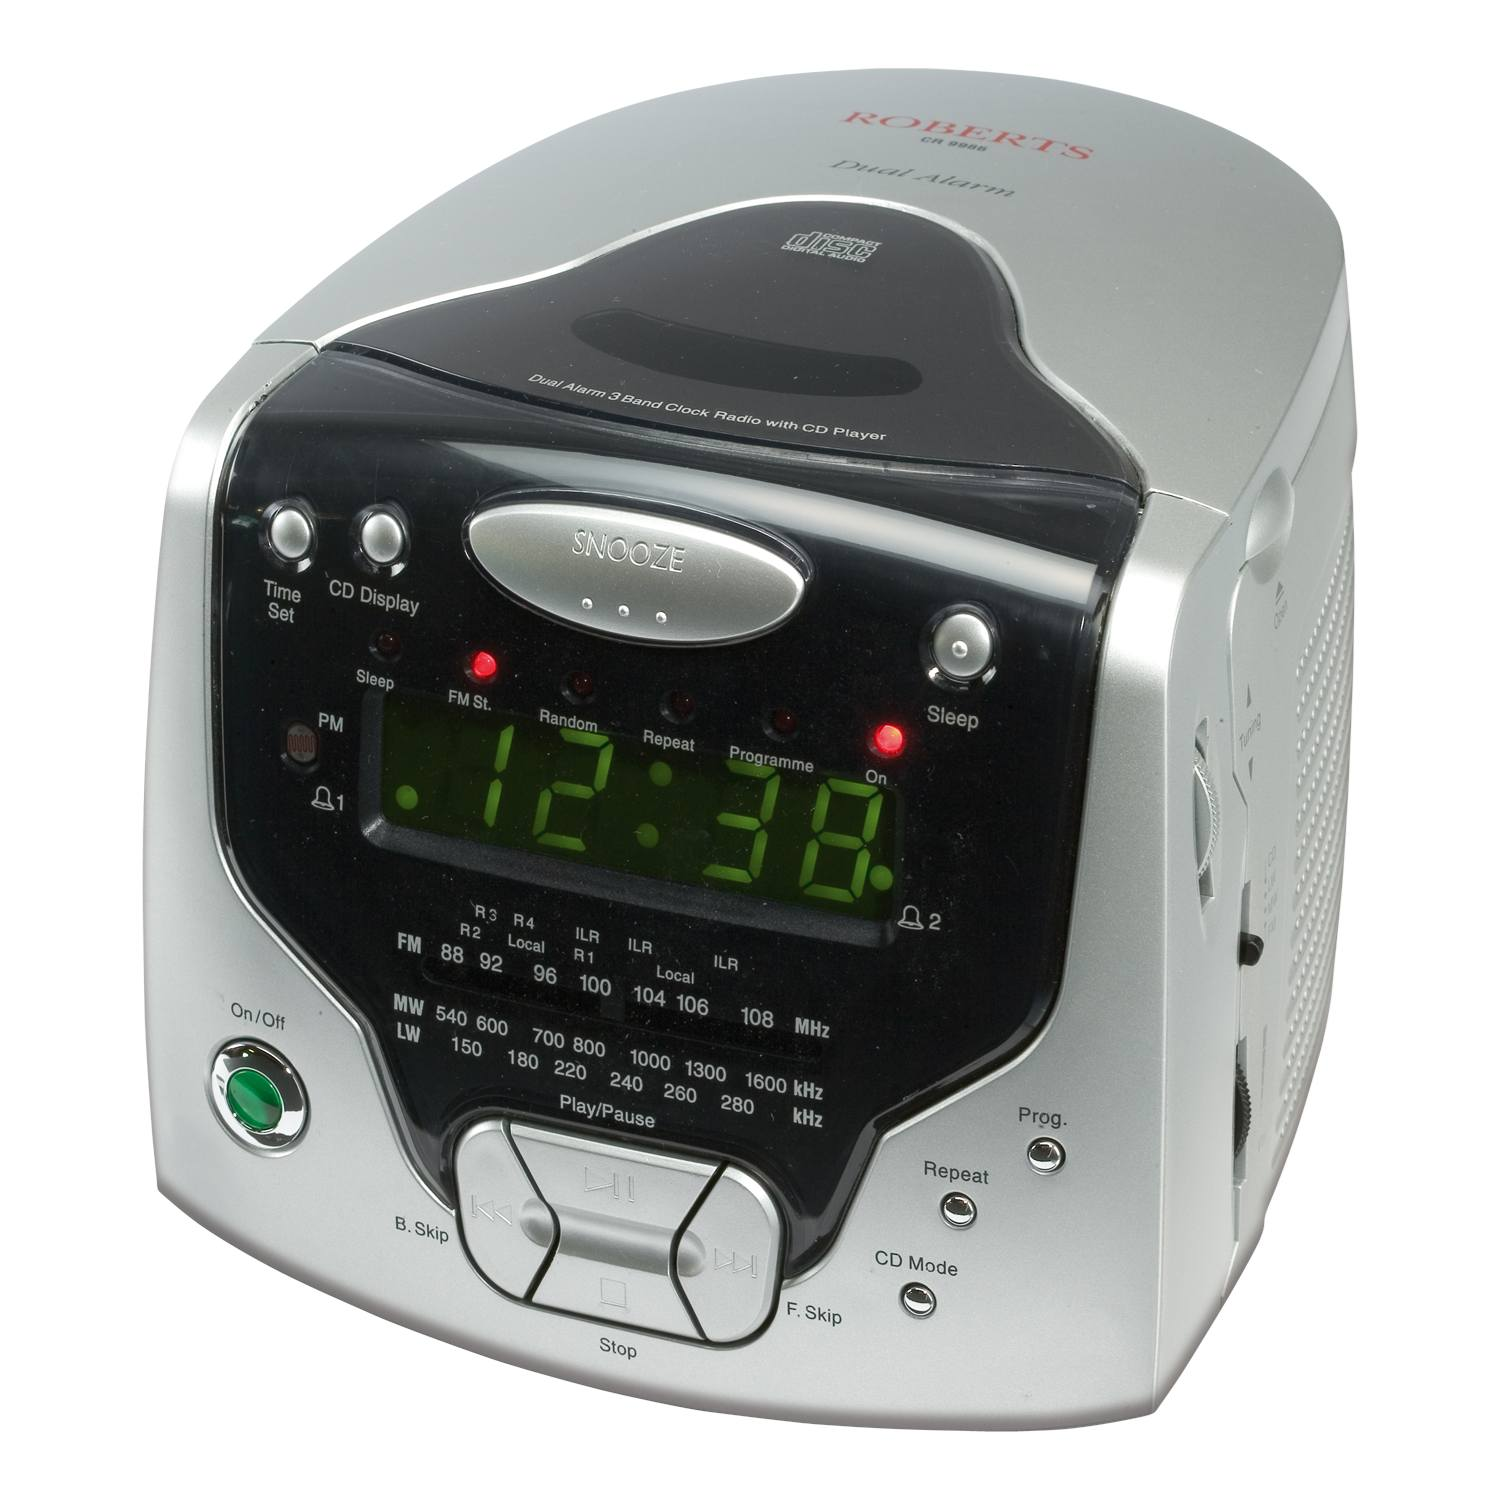 roberts cd cube cr9986 clock radio with cd player headphone output in silver ebay. Black Bedroom Furniture Sets. Home Design Ideas